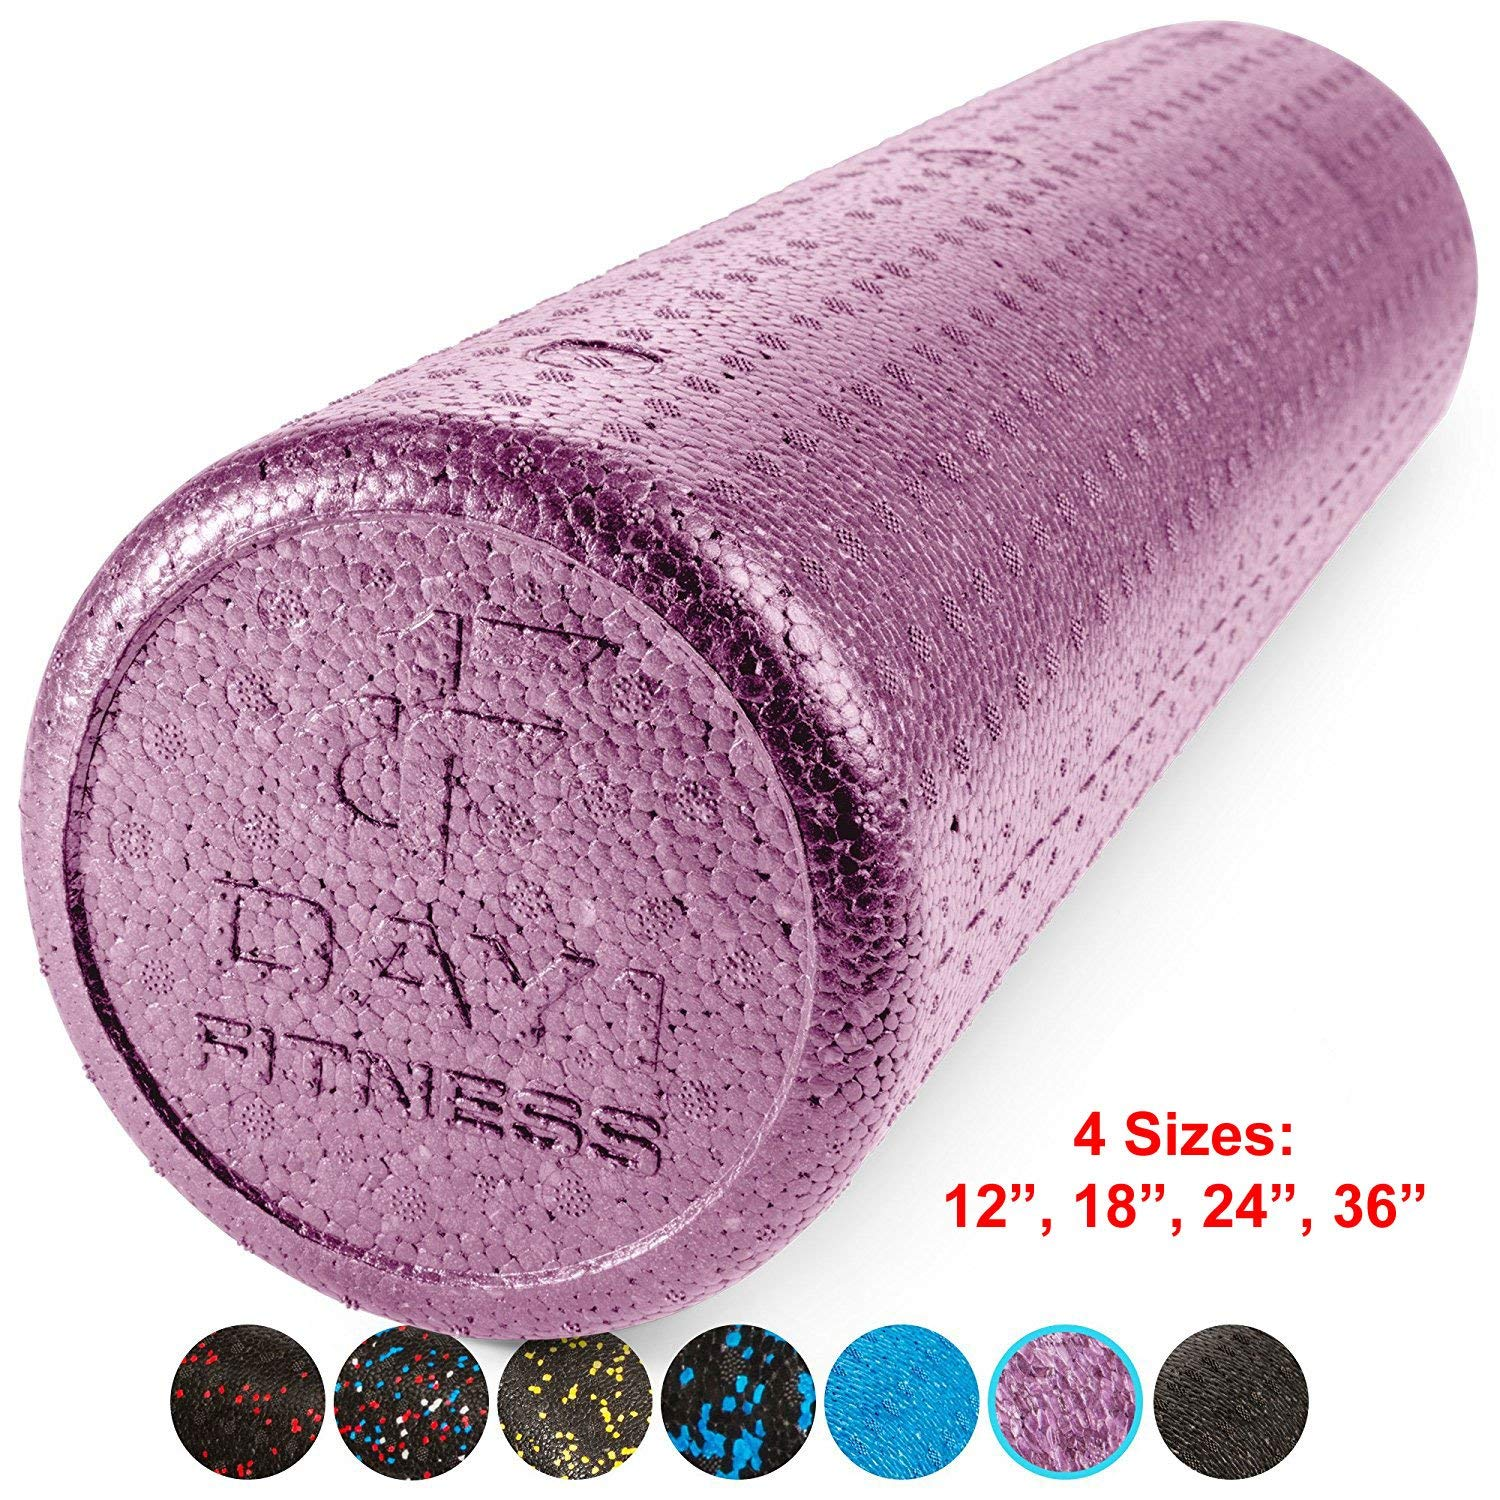 Aommos Memory Foam Roller Soft Yoga Pillow Extra Firm High Density for Physical Therapy, Exercise, Deep Tissue Muscle Massage